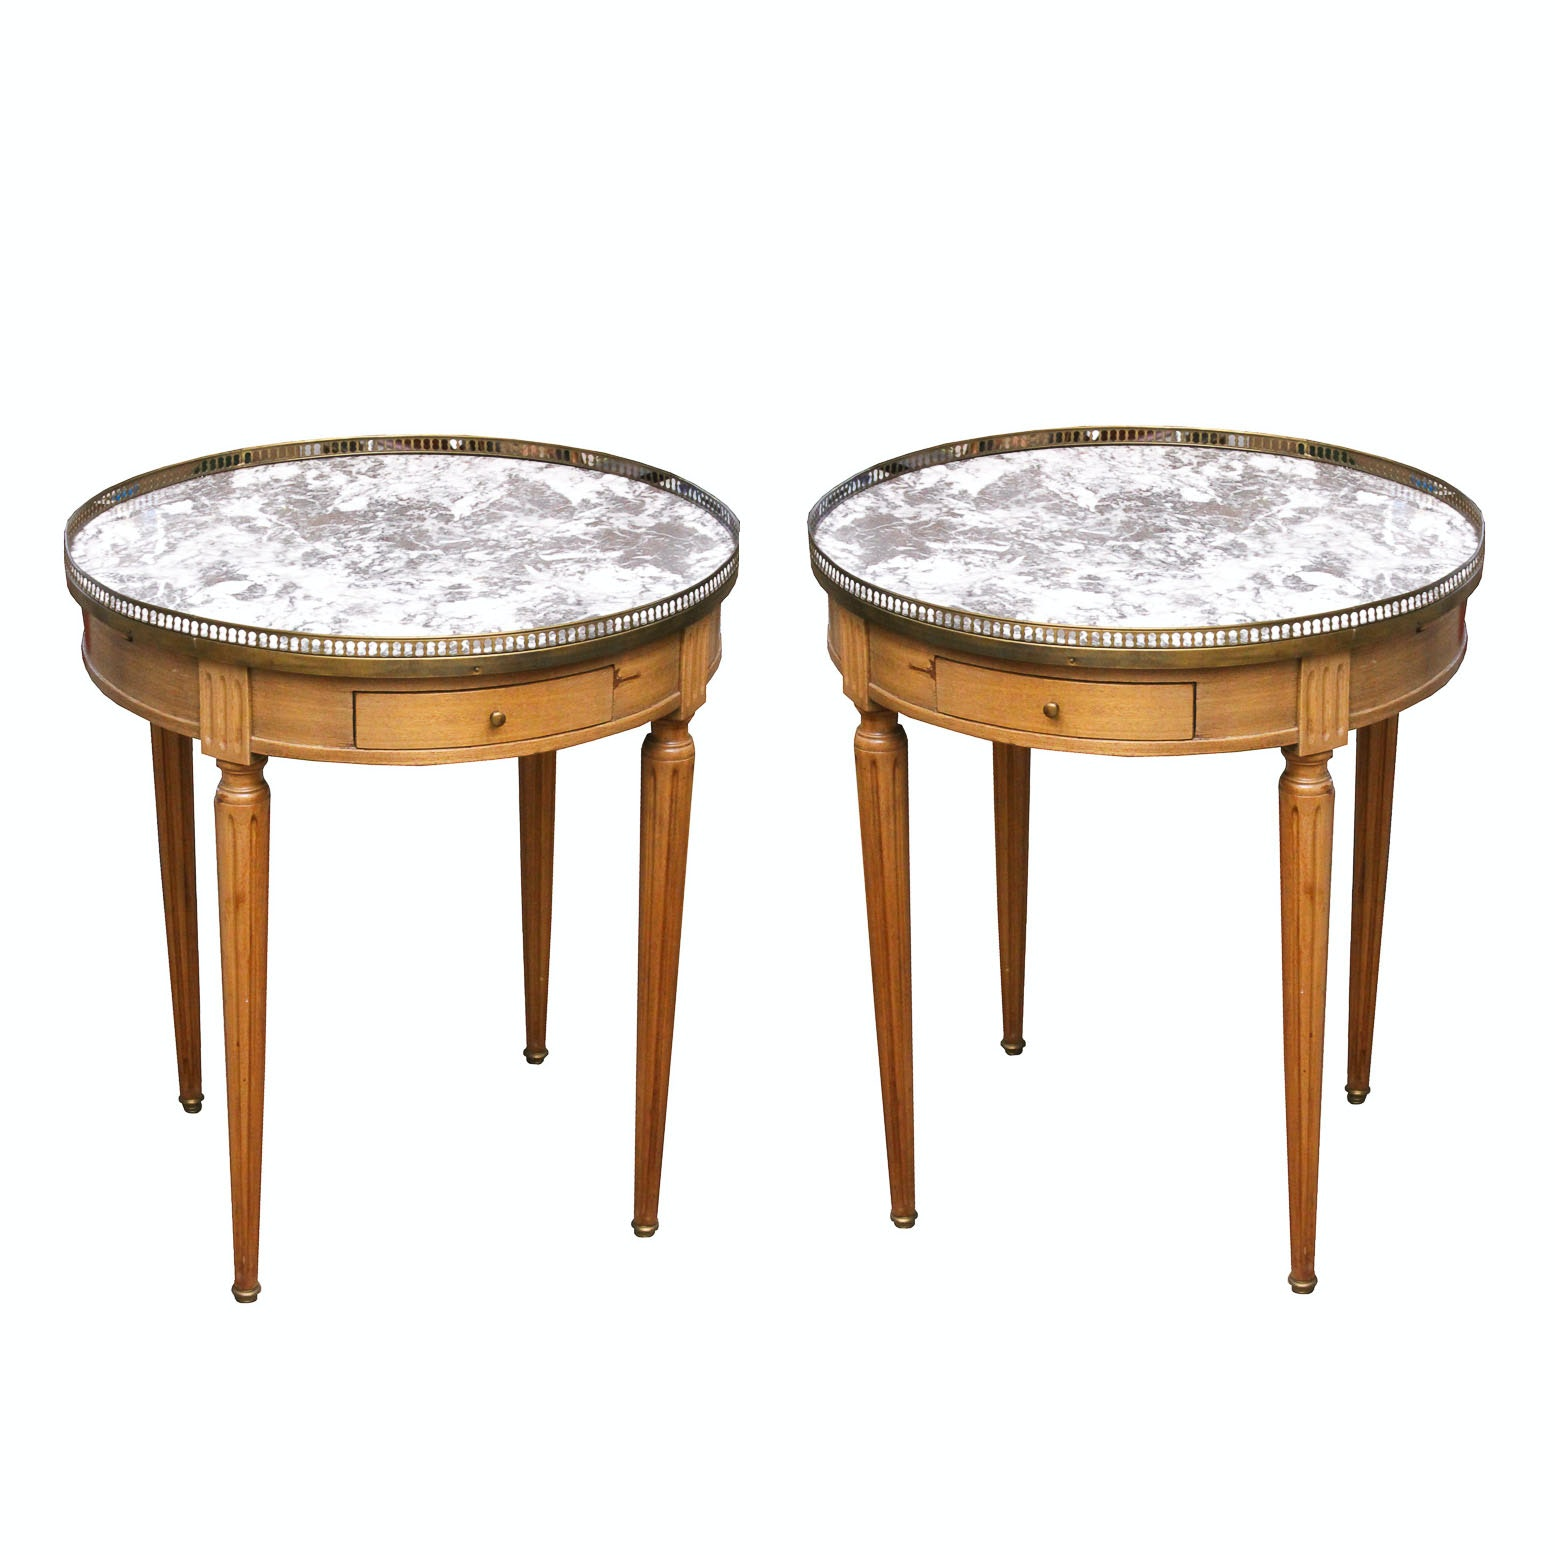 Pair of Louis XVI Style Marble Topped Tables